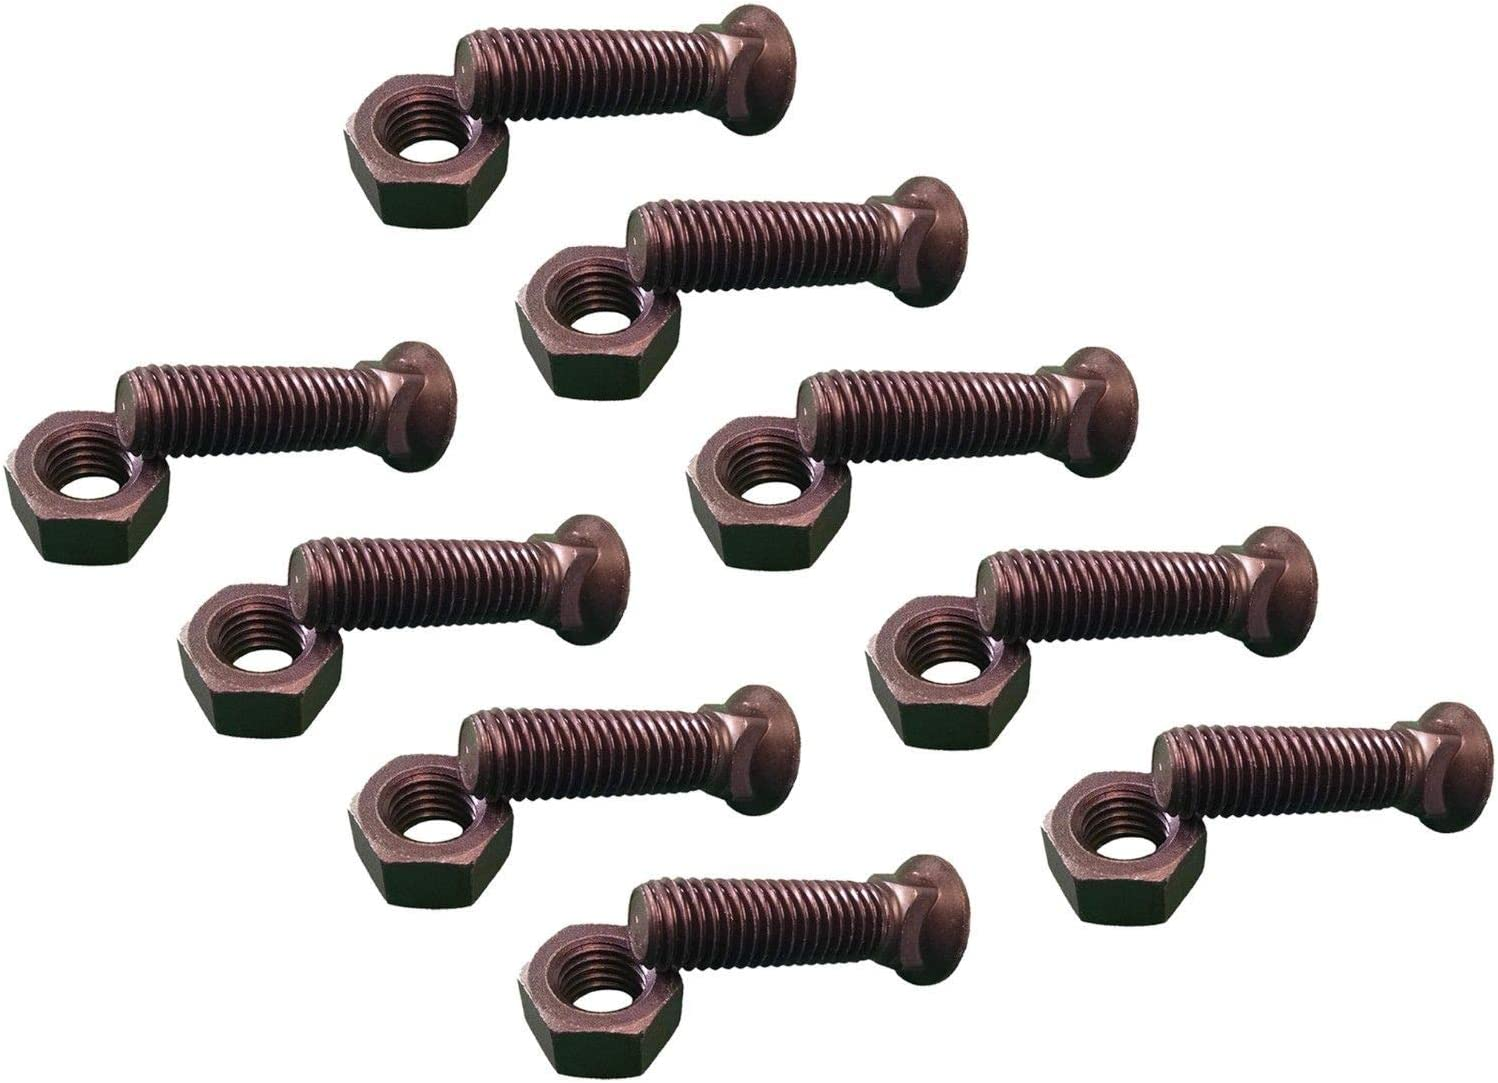 Aparoli SJA 68632/ QB DIN 933/ Hexagonal Screws with Thread up to Head/  Pure Copper 18X100/ Pack of 25/ Quality: Basic / 8.8/